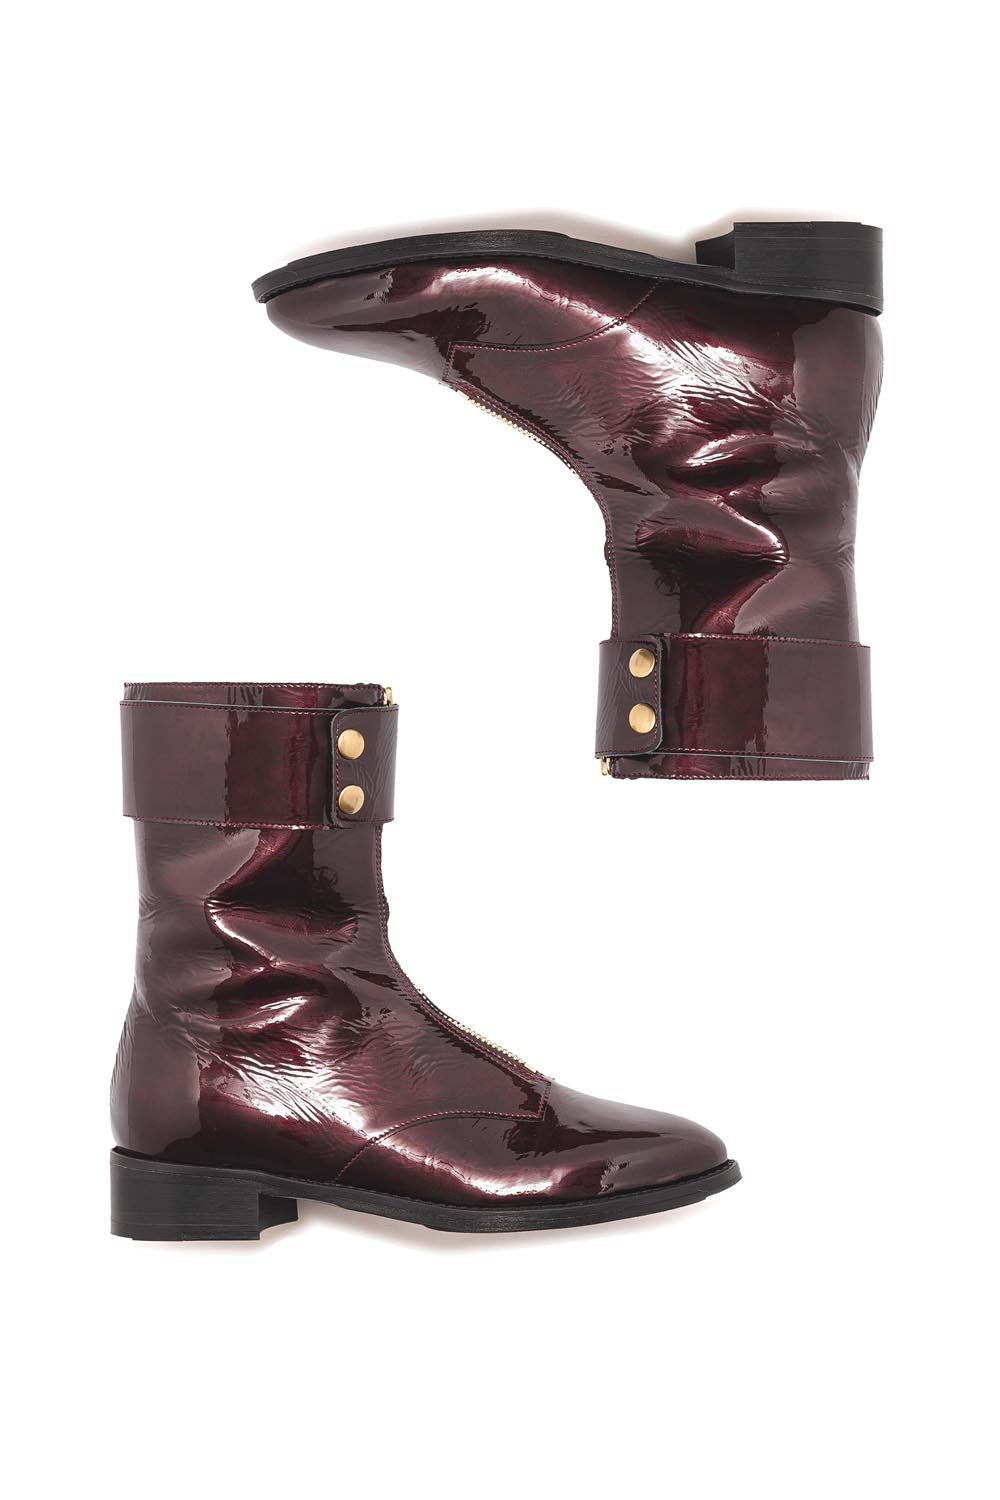 Woodstock Rangers boots in burgundy leather